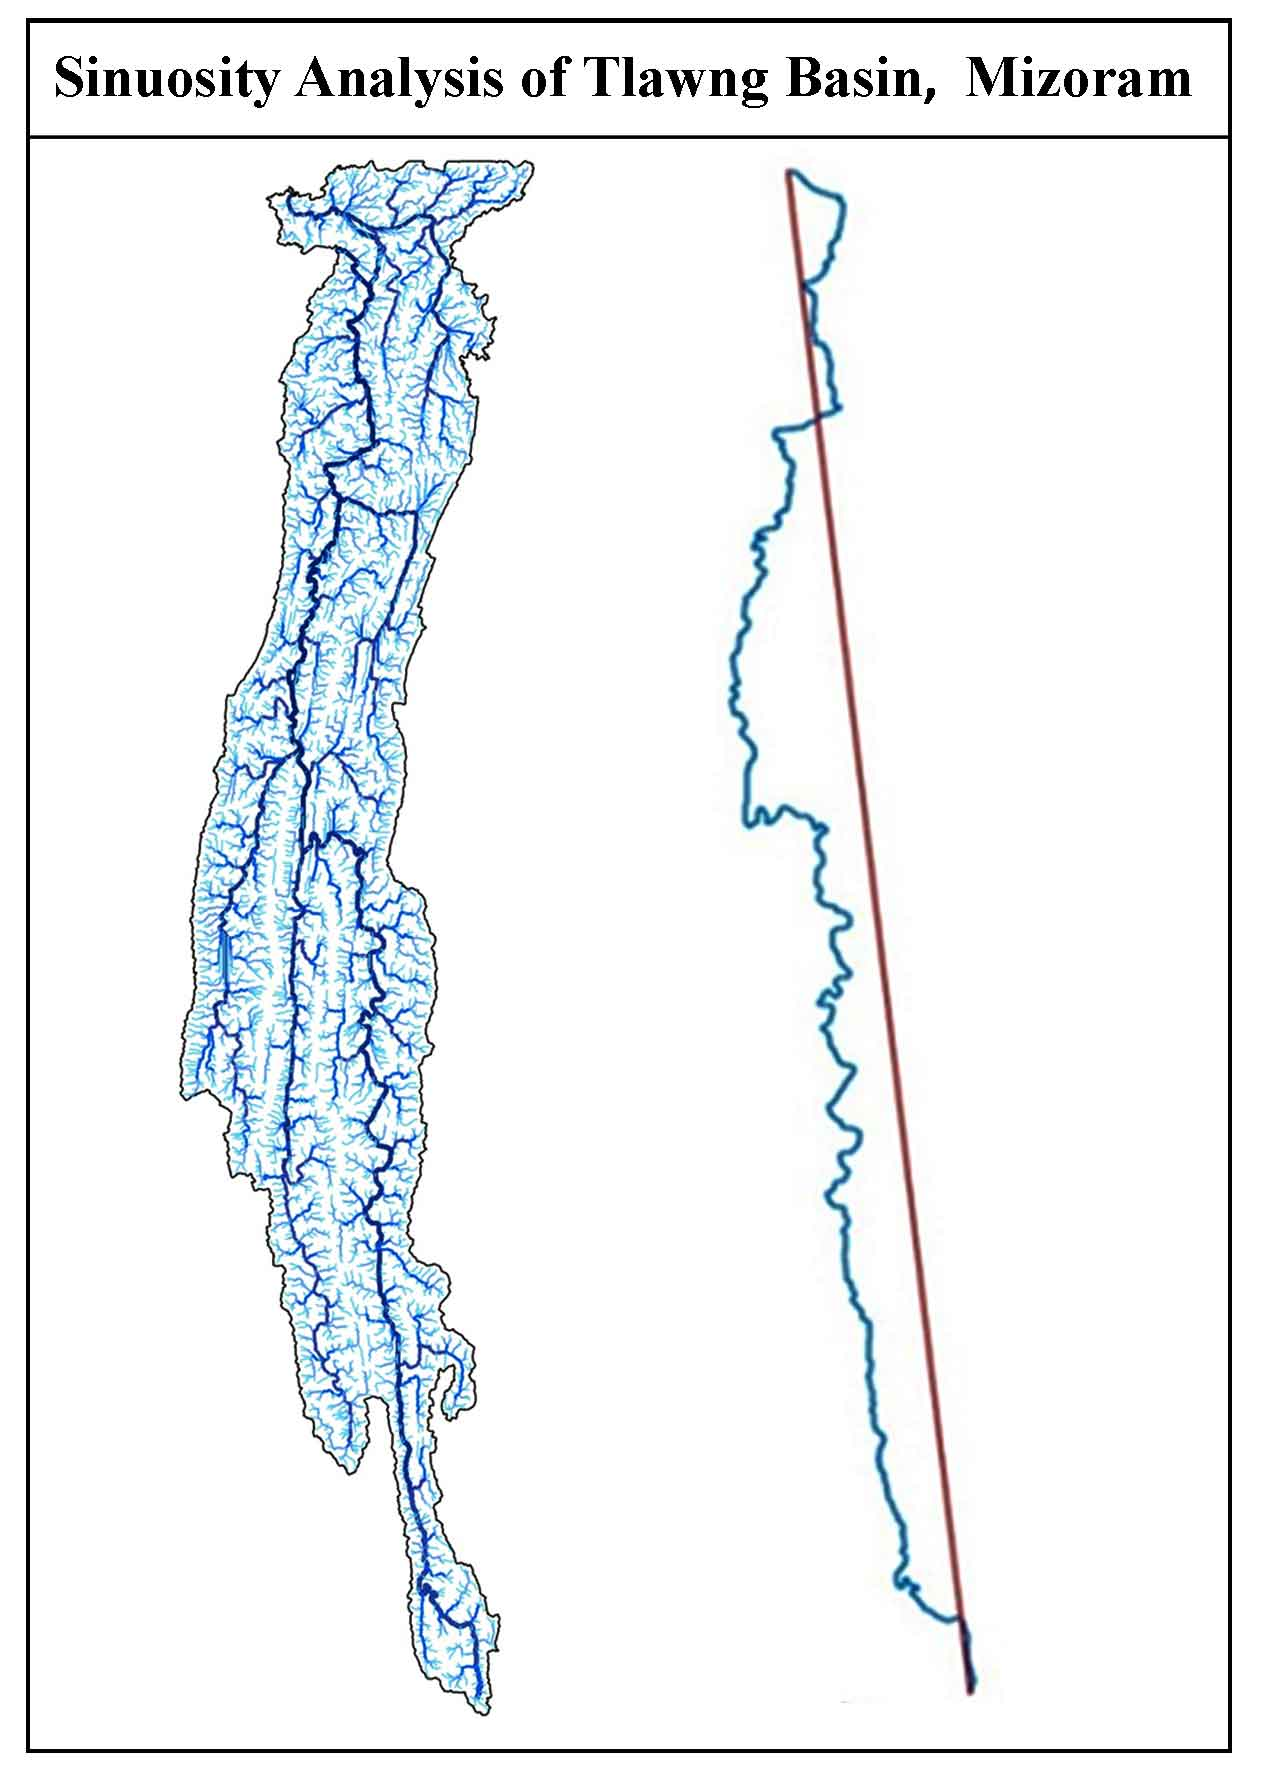 Morphometric and Sinuosity Analysis of Tlawng River Basin: A Geographic Information System Approach